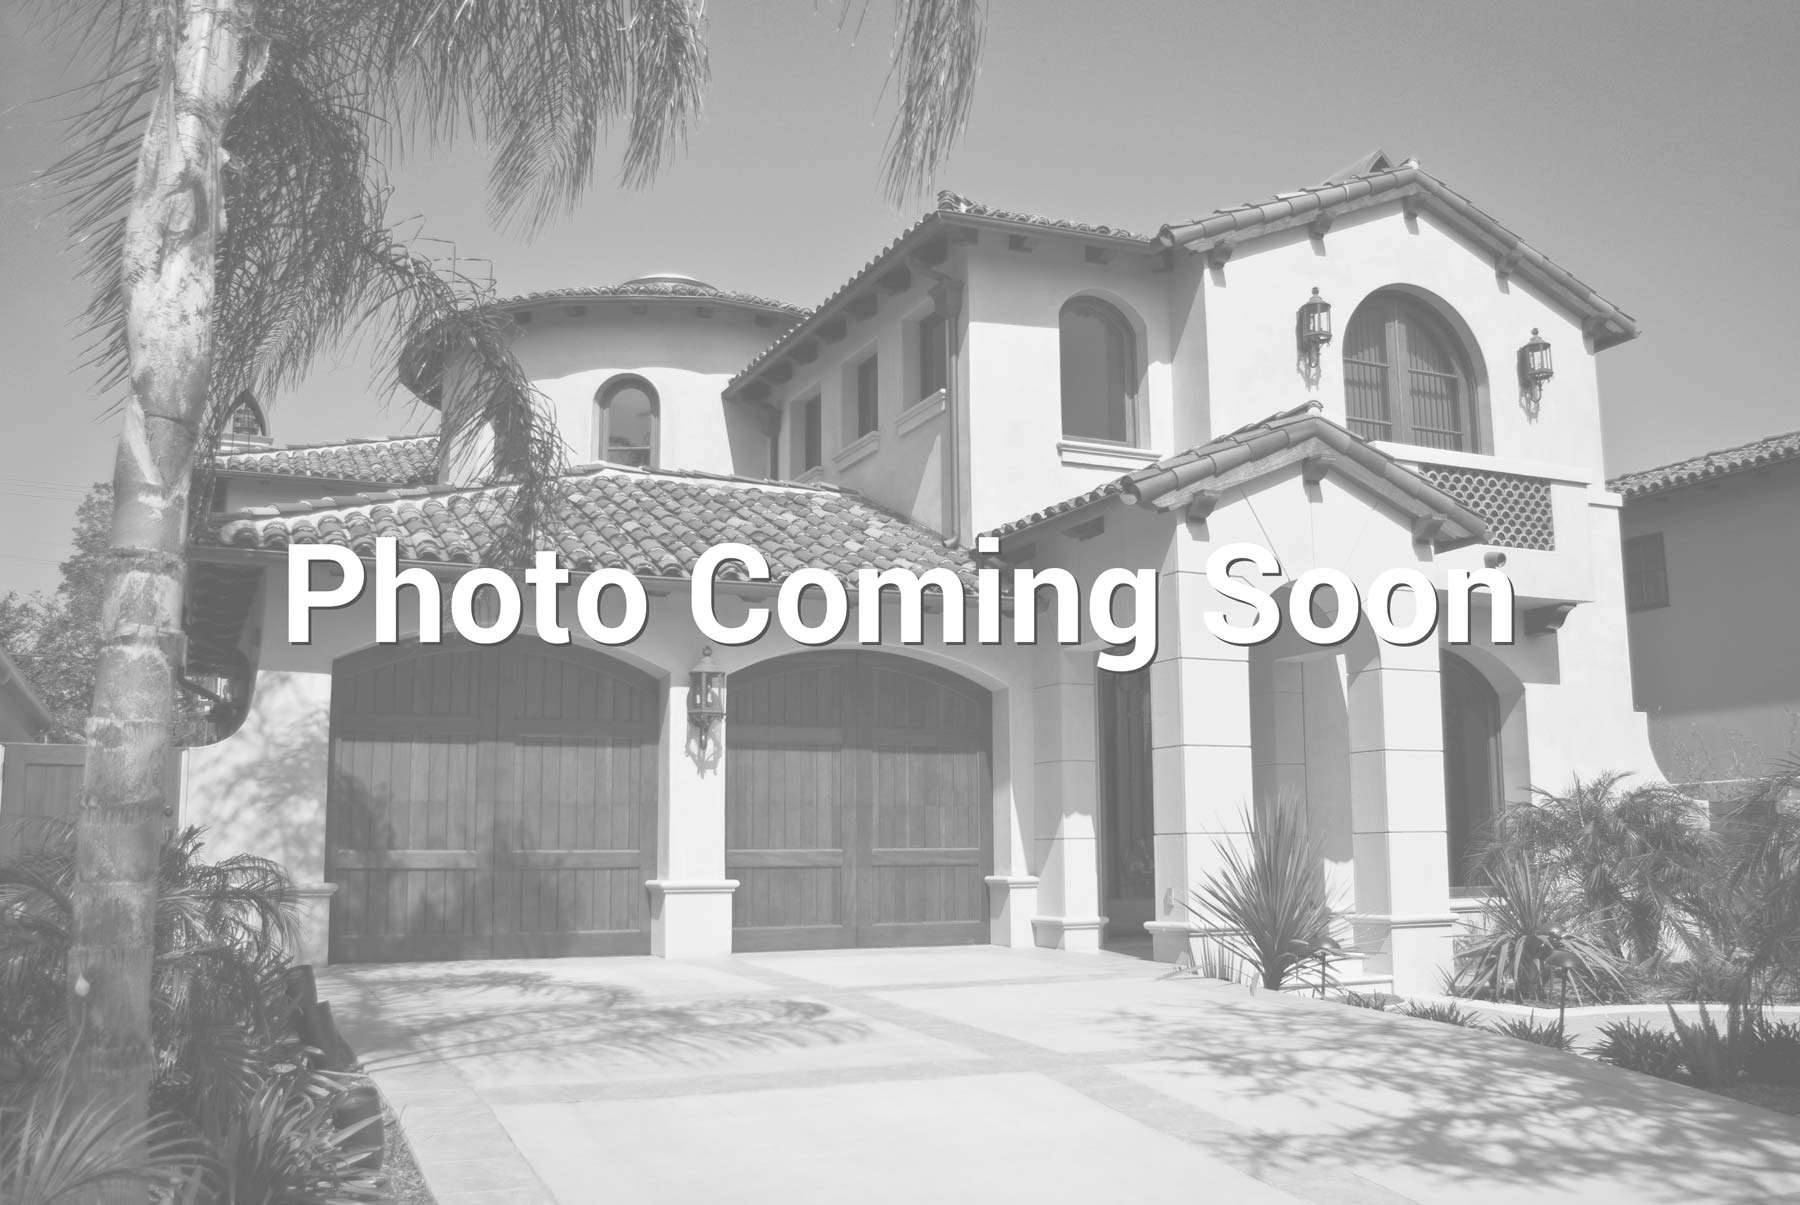 $385,000 - 4Br/2Ba - Home for Sale in Adora Trails Parcel 4, Gilbert